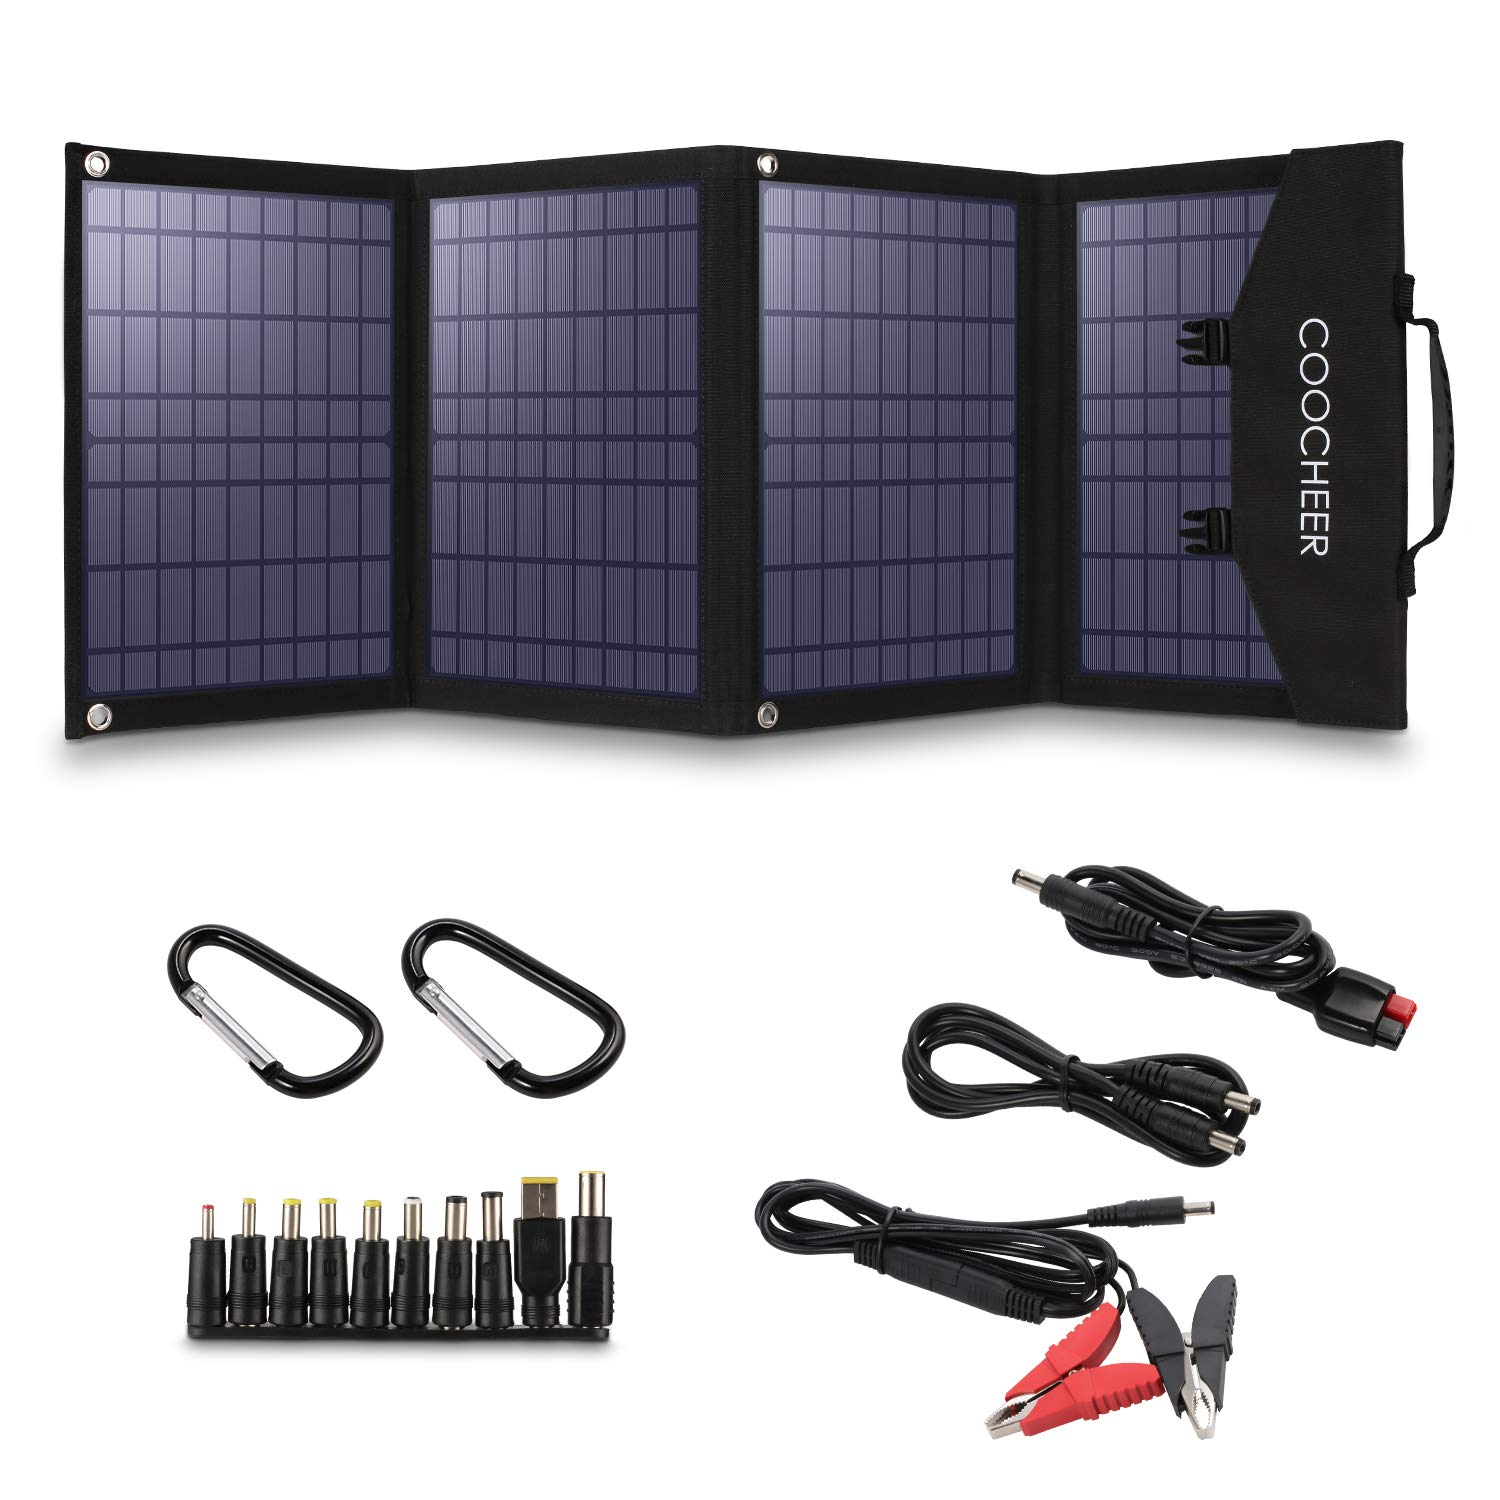 COOCHEER Solar Panel 60W, Portable Solar Panel Charger for Portable Generator/Power Station/USB Devices/Cars/Yacht with 2 USB Ports & 1 DV Port, Suitable for Camping Van